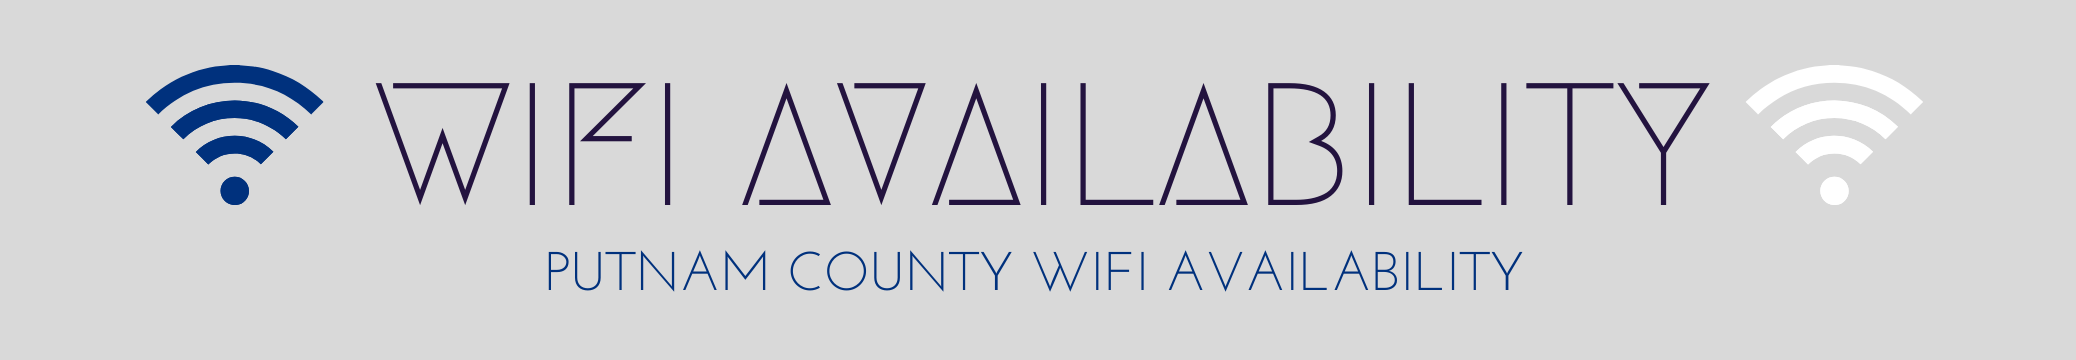 Click here to view free WiFi locations in Putnam County